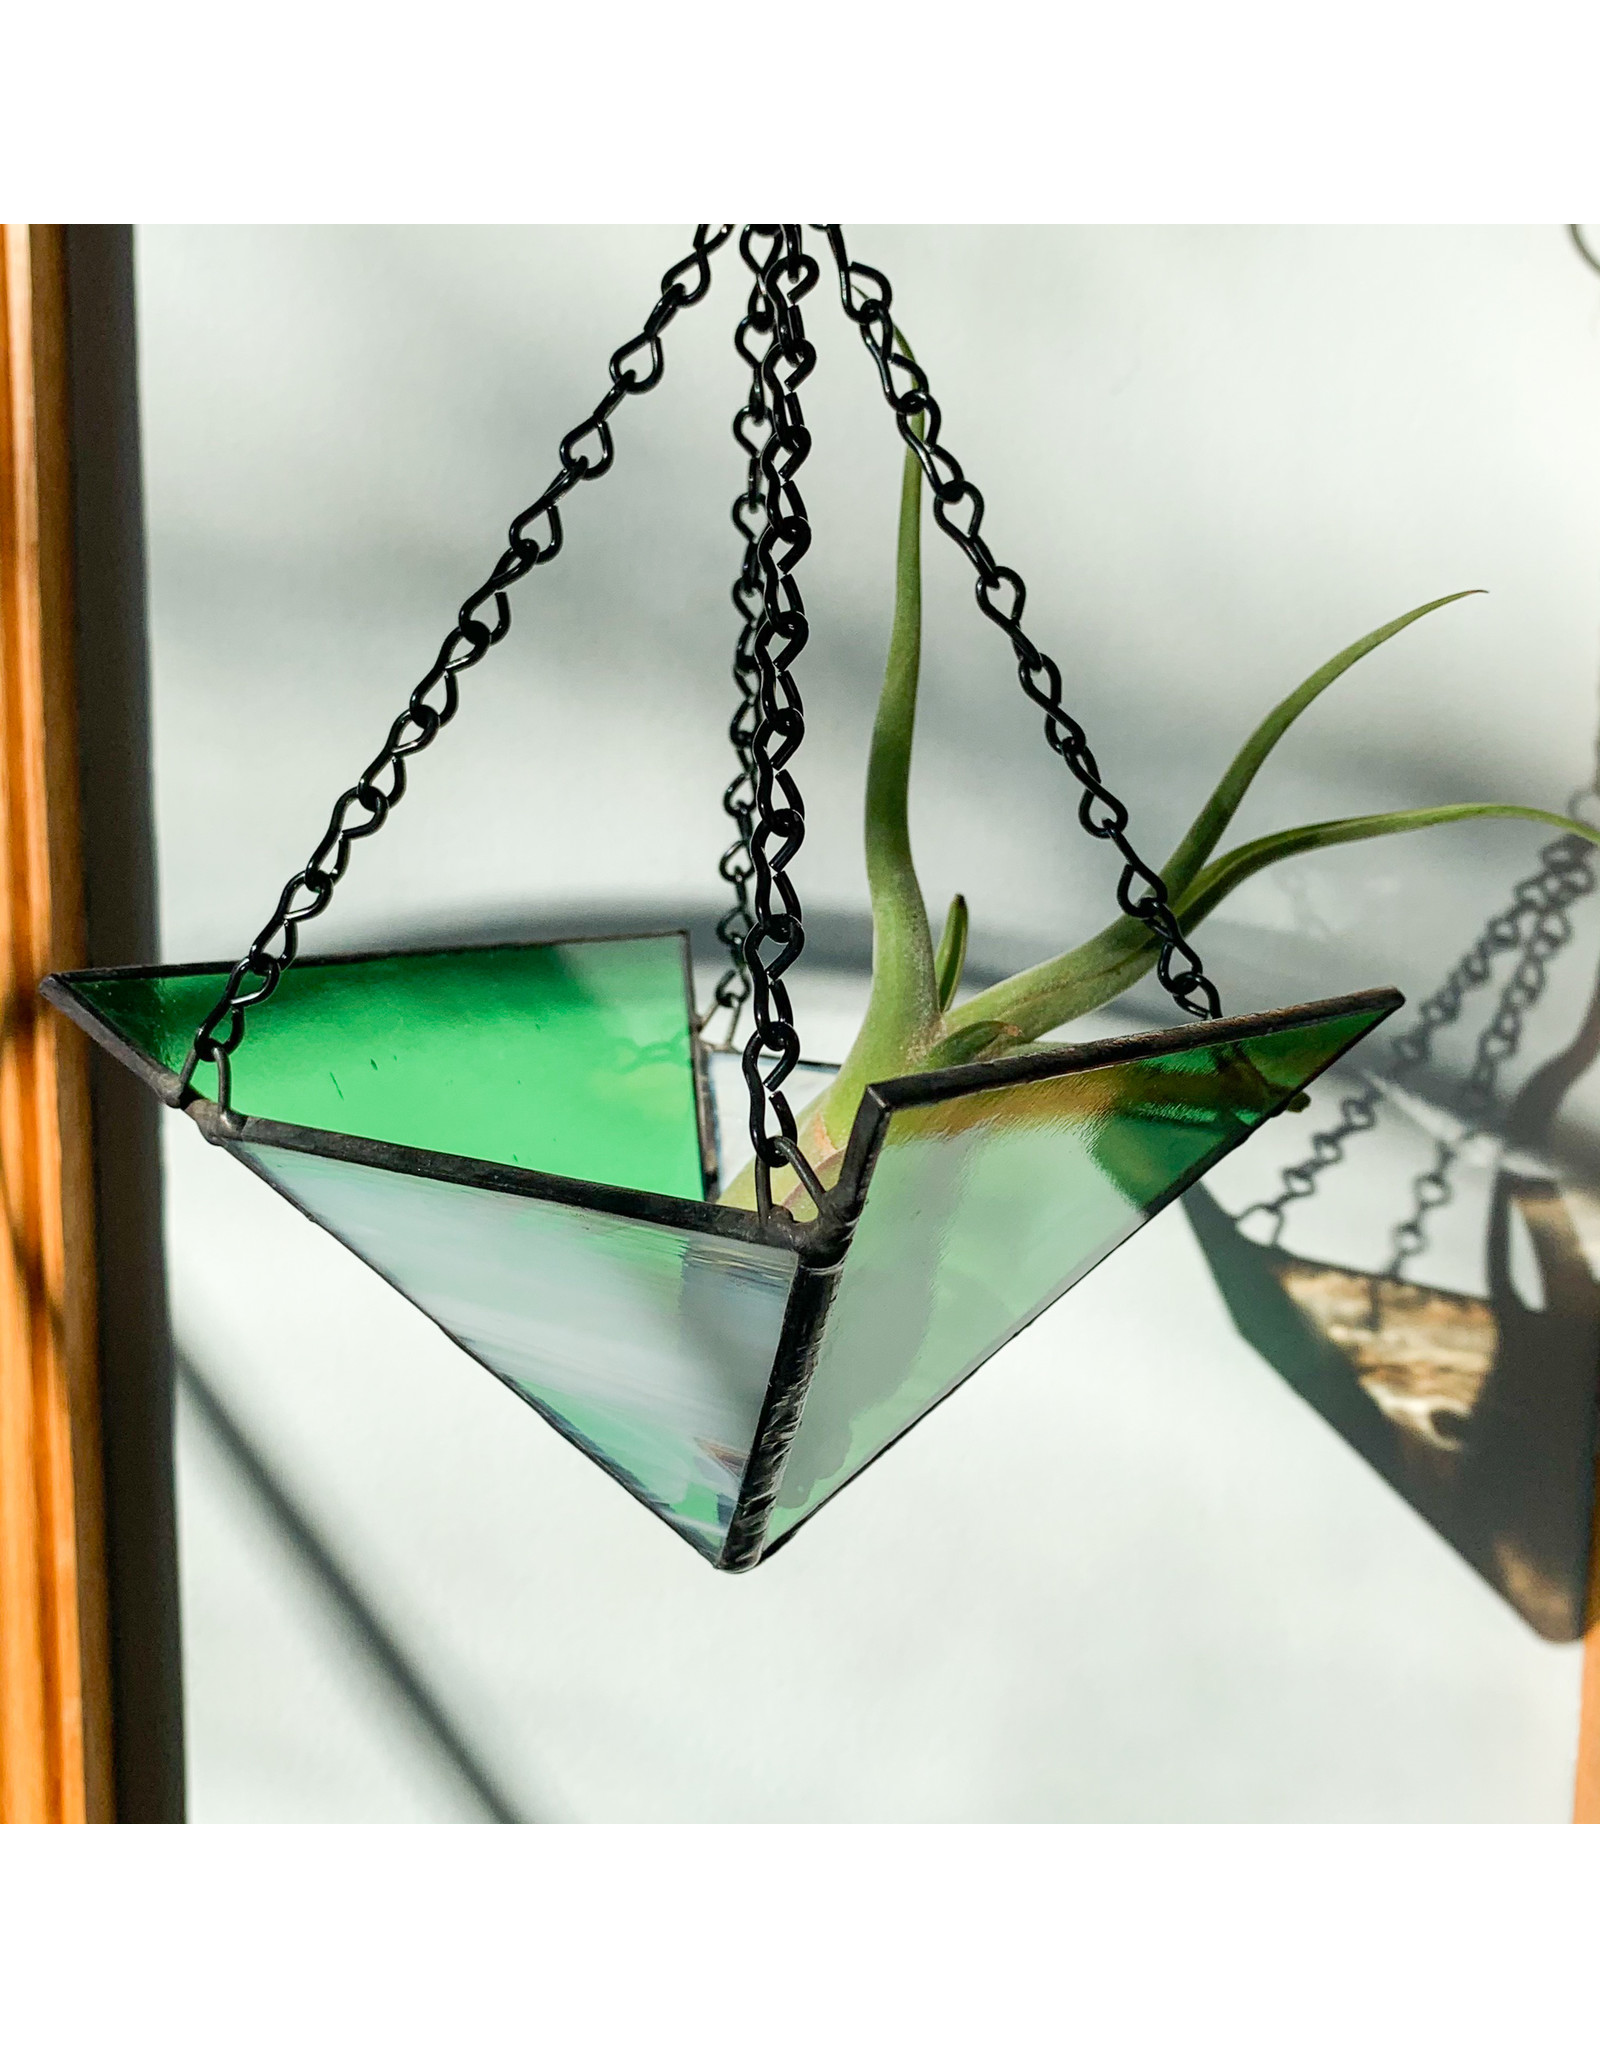 Reverberation Stained Glass Non Consignment XL Planter Green White